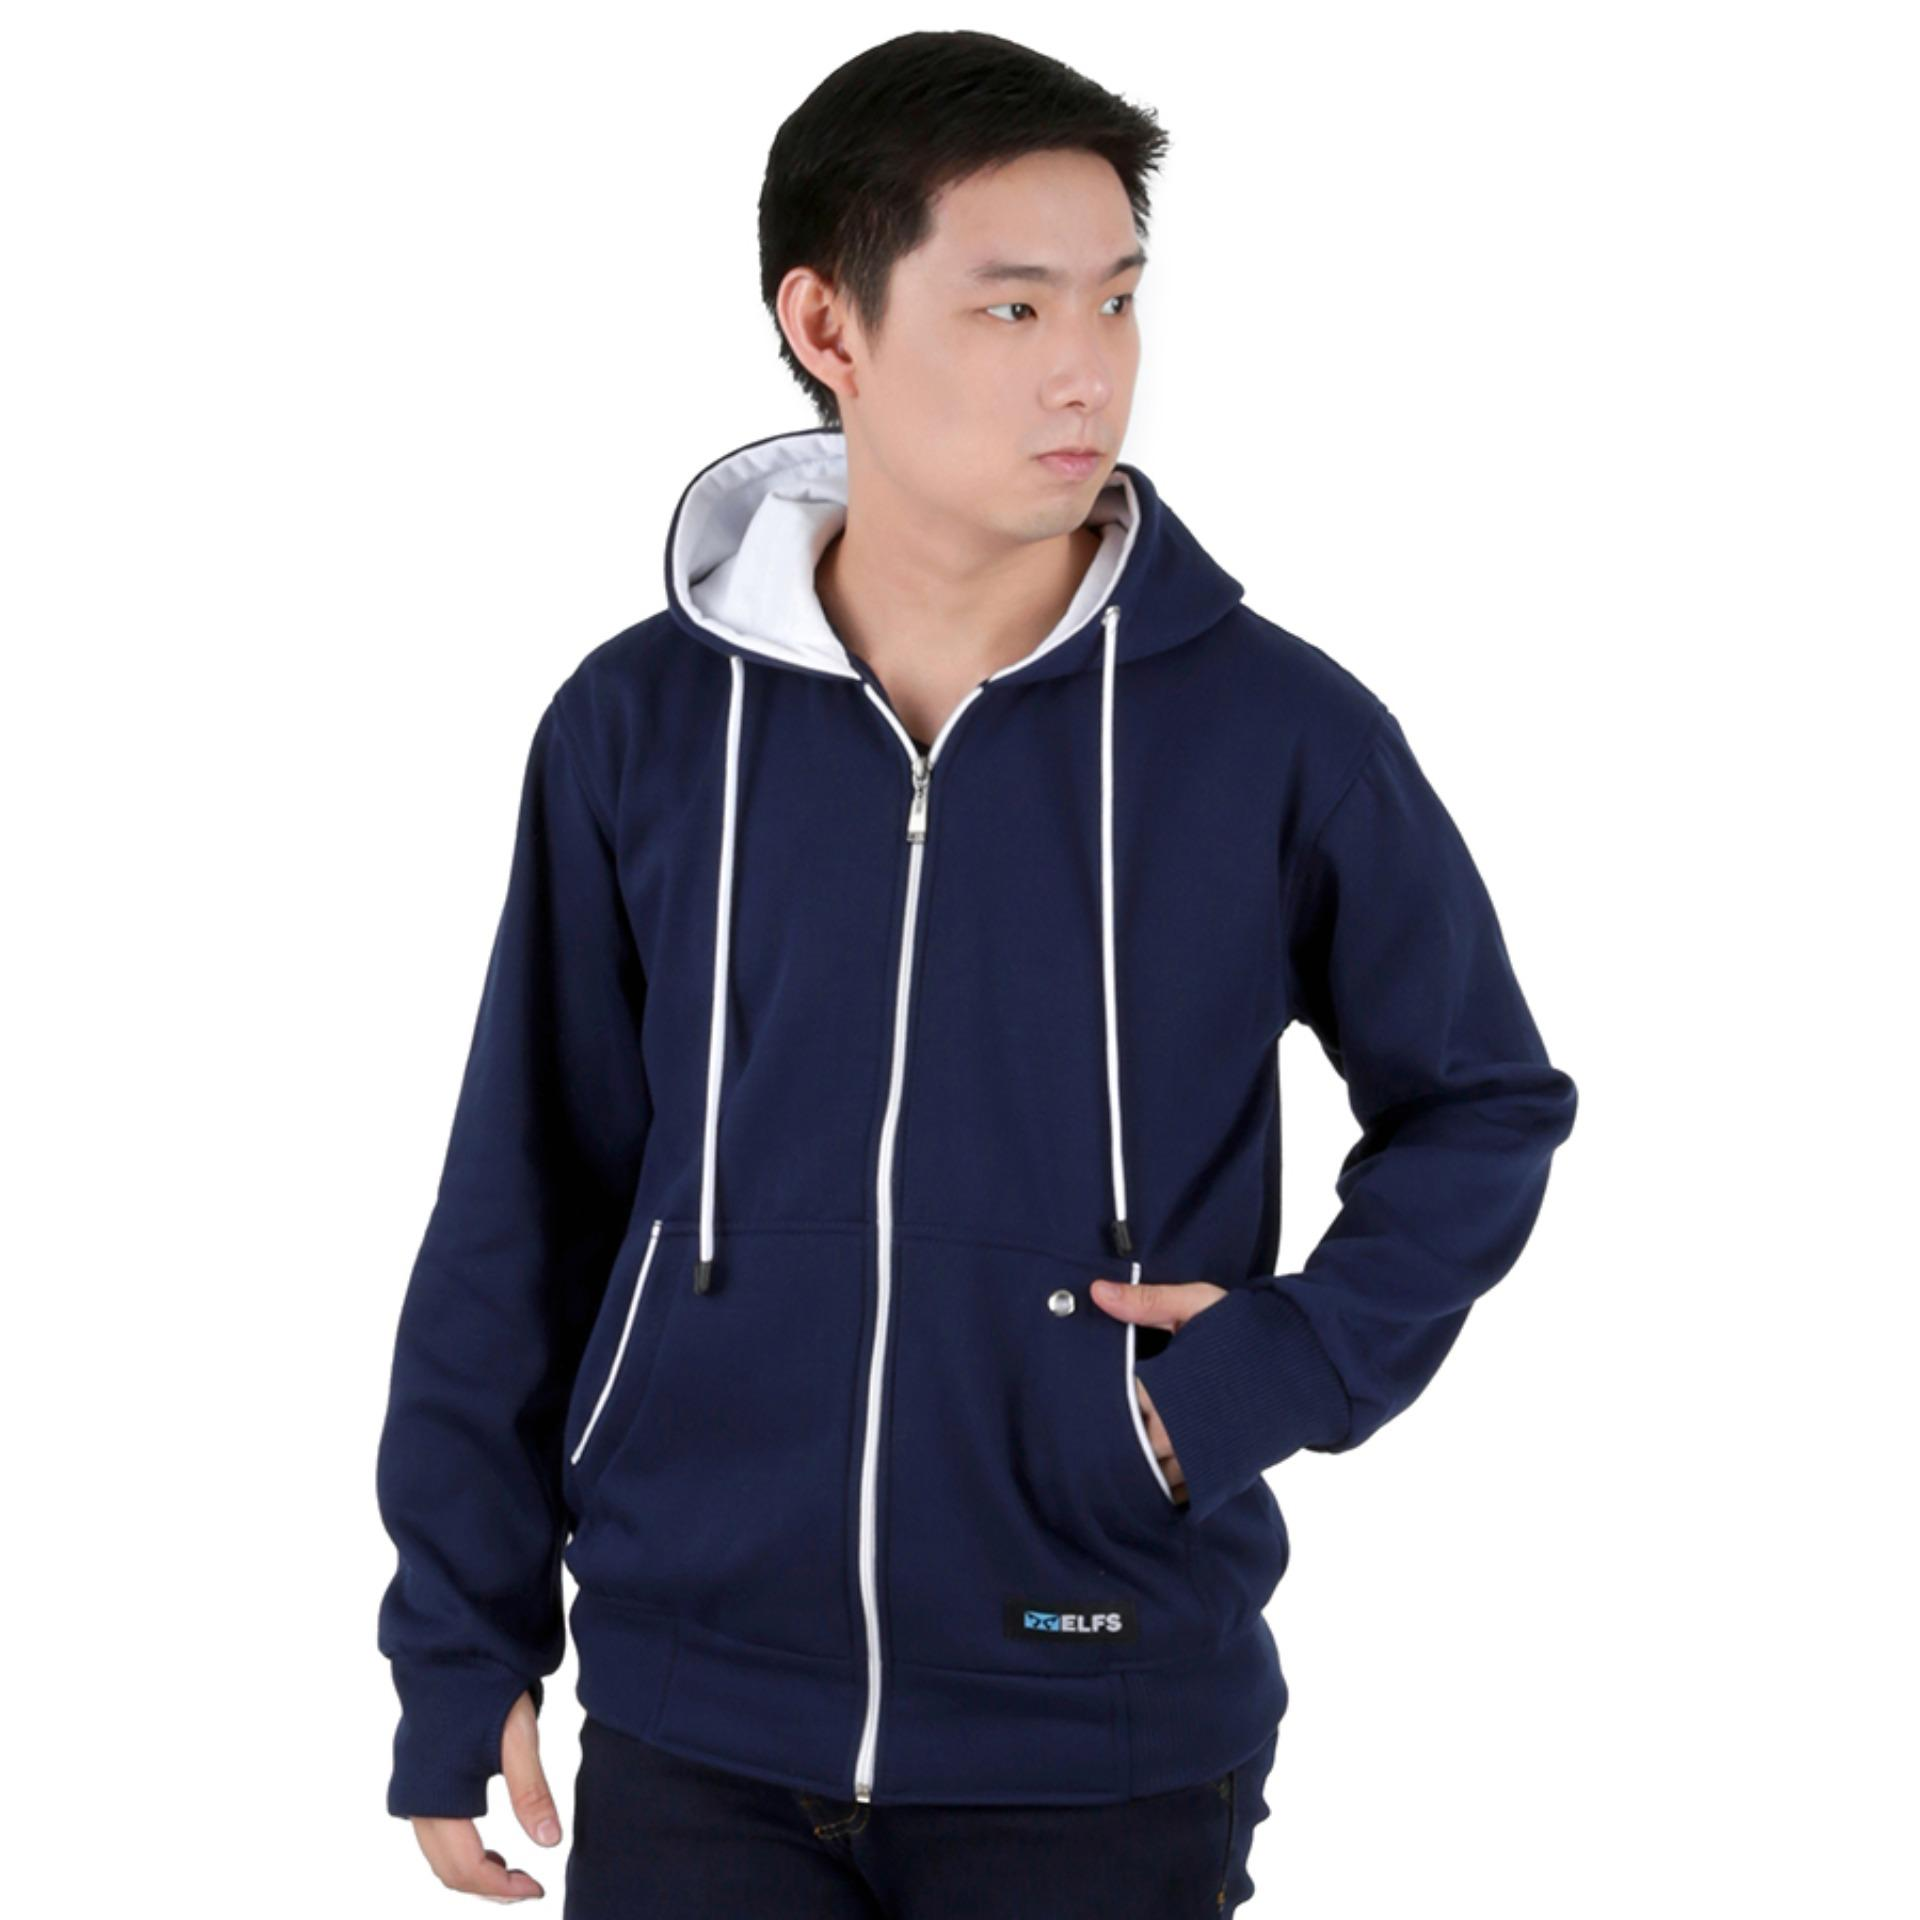 Elfs Shop - Jaket Sweater Hoodie List Pria Fleece By Elfs Shop.